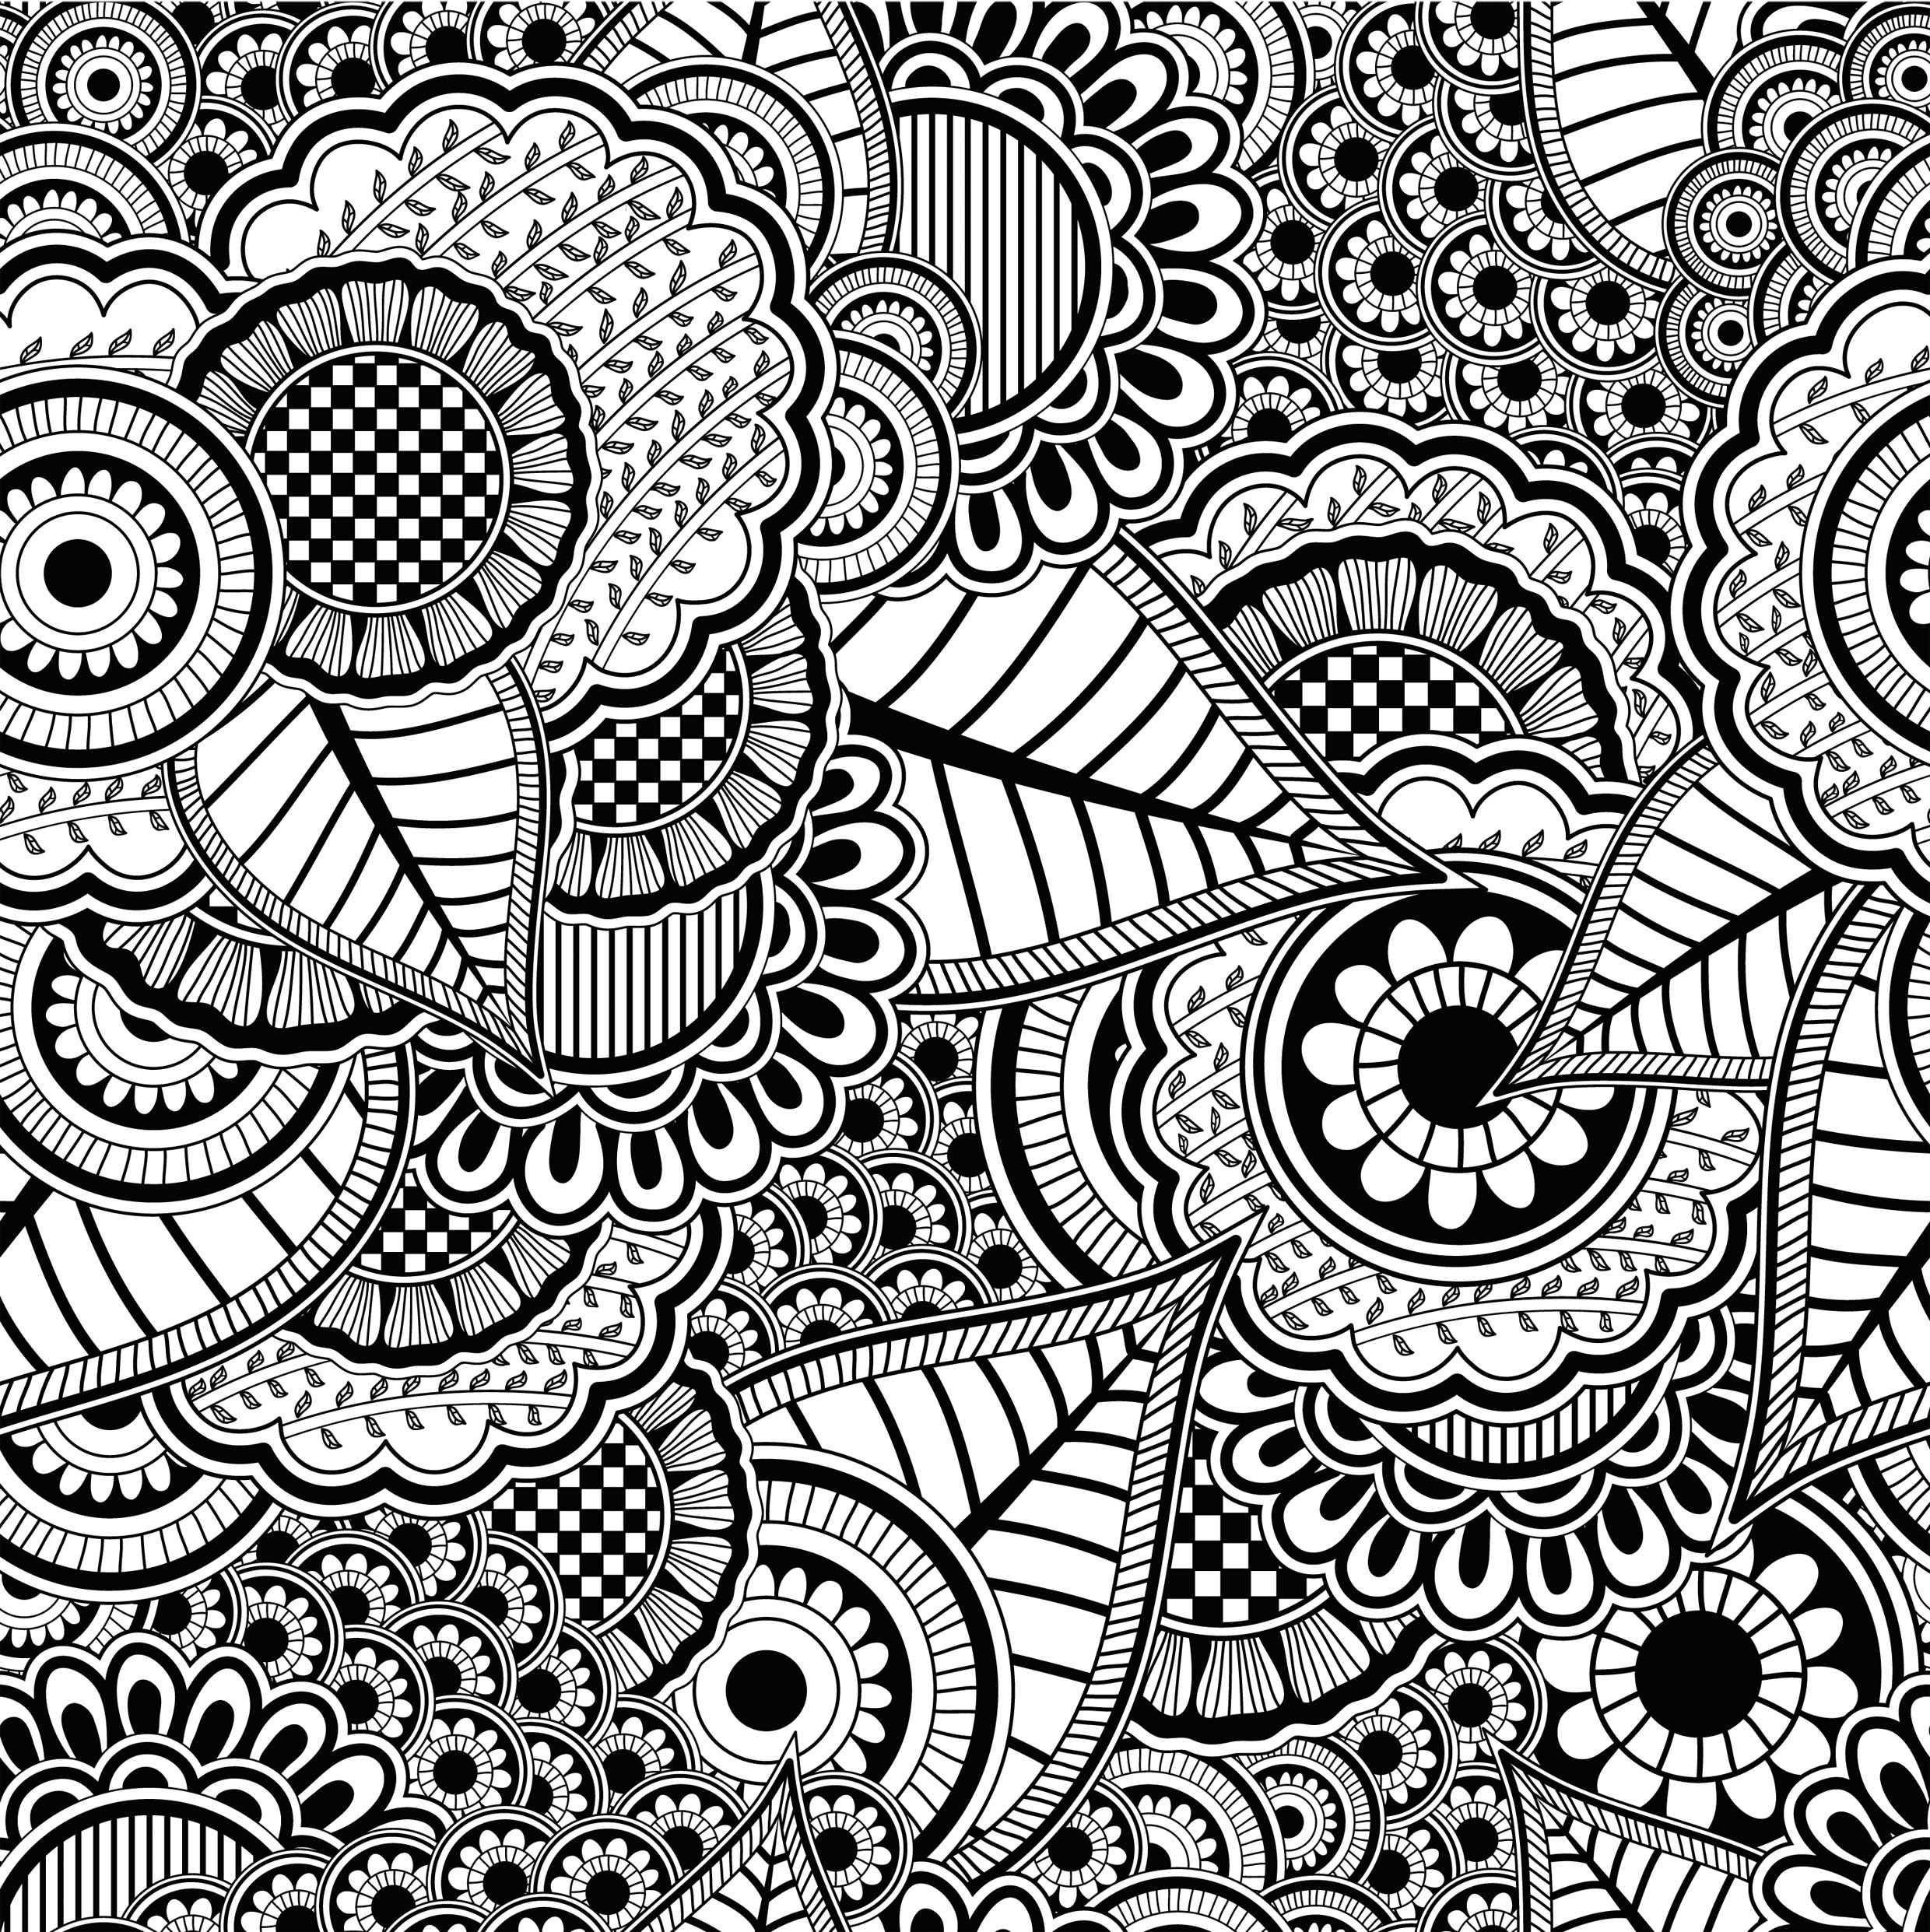 coloriage anti stress facile